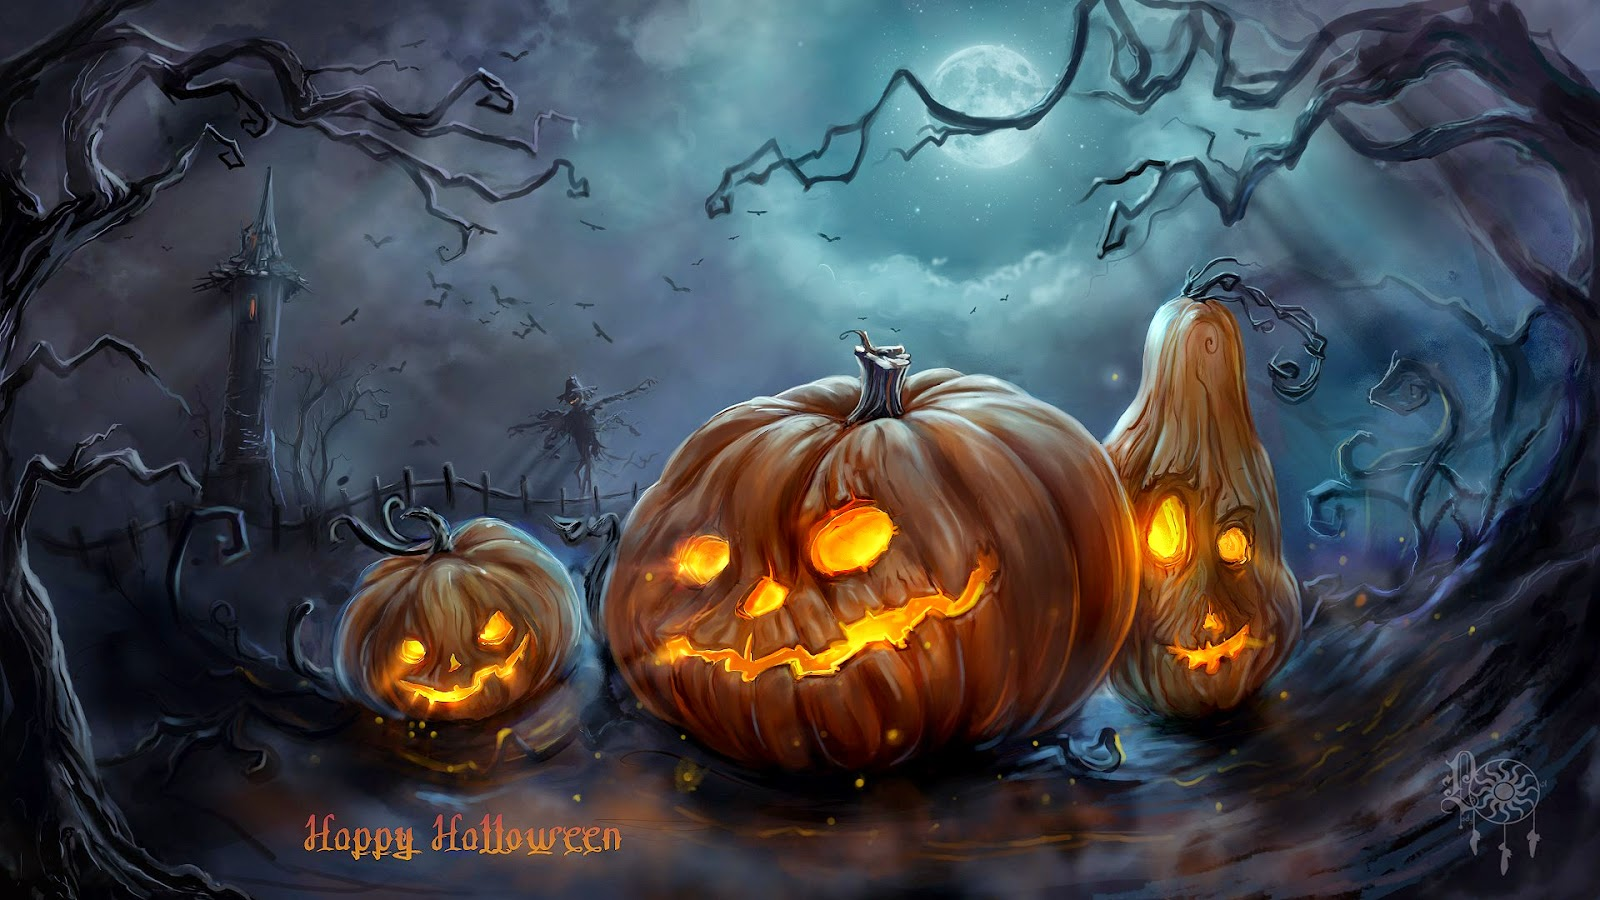 Halloween-wishes-texted-card-with-pumpkin-wallpaper-images-download.jpg